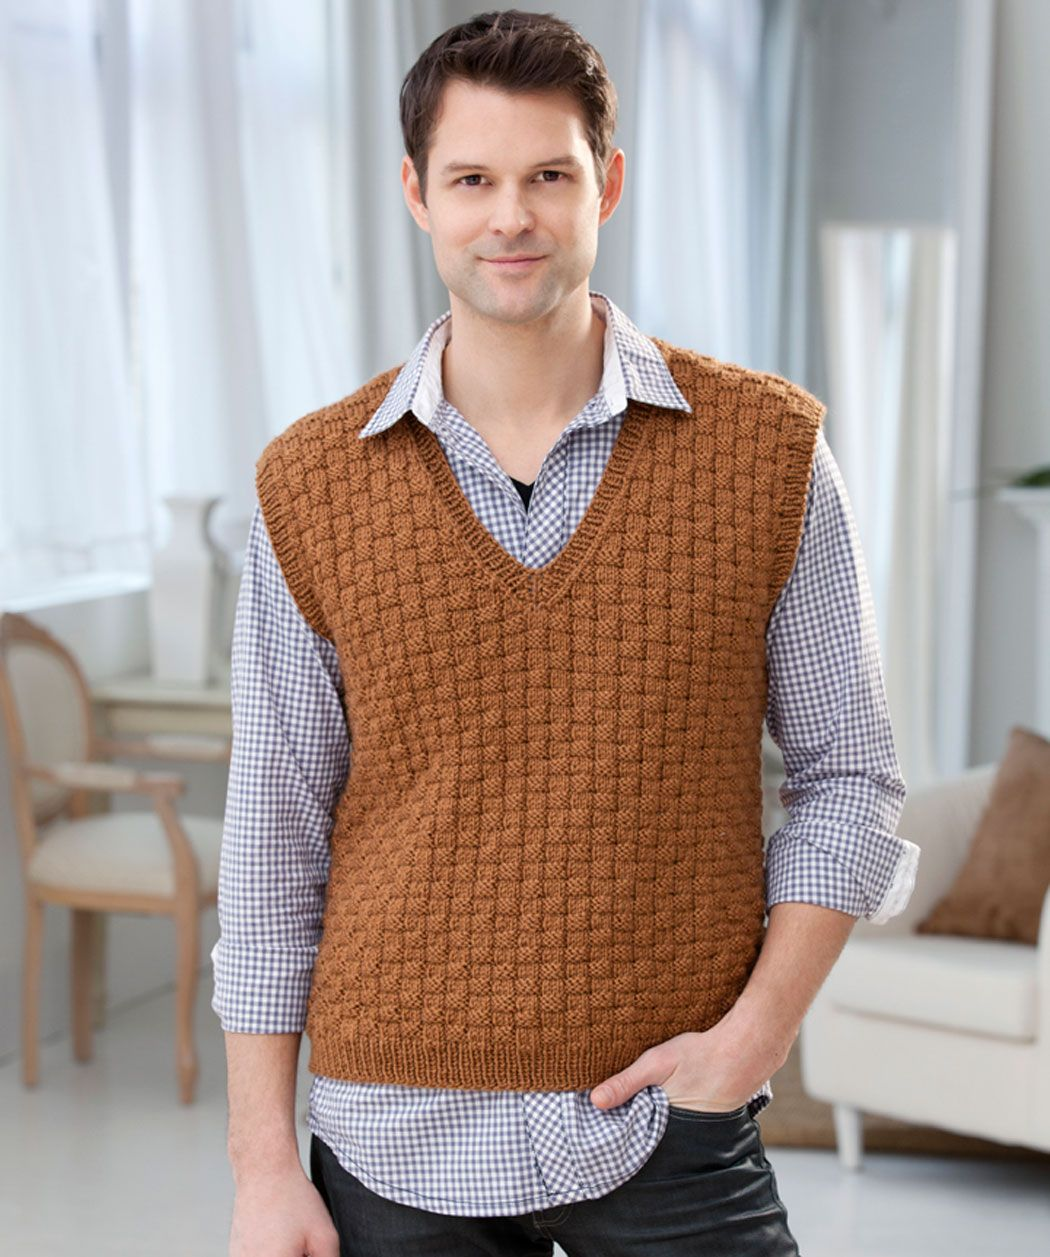 Men\'s Basketweave Vest - in a natural color and cotton or linen ...